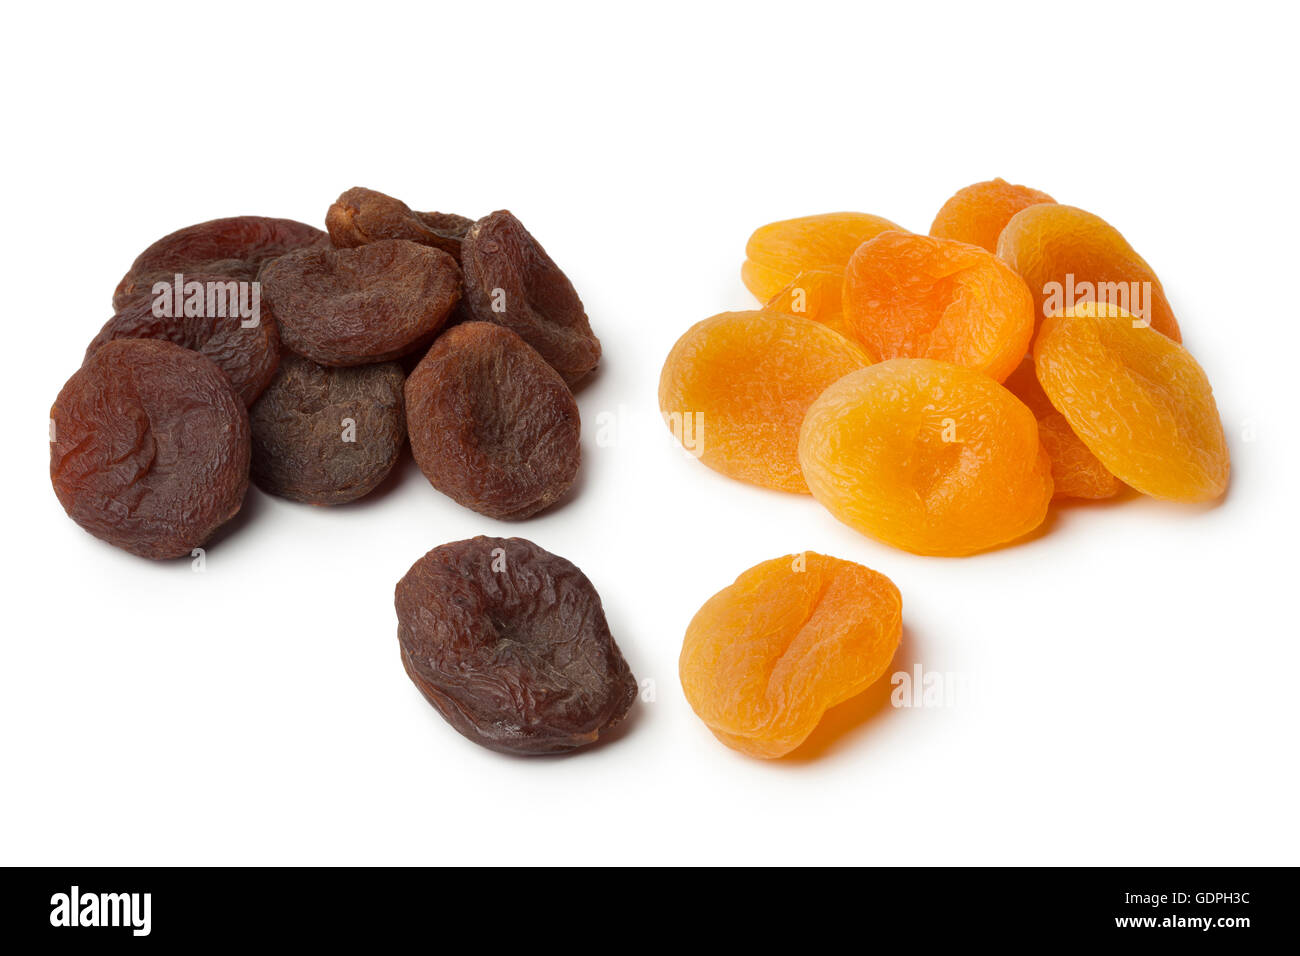 Heap of healthy nutritious brown and orange dried apricot fruit on white background - Stock Image